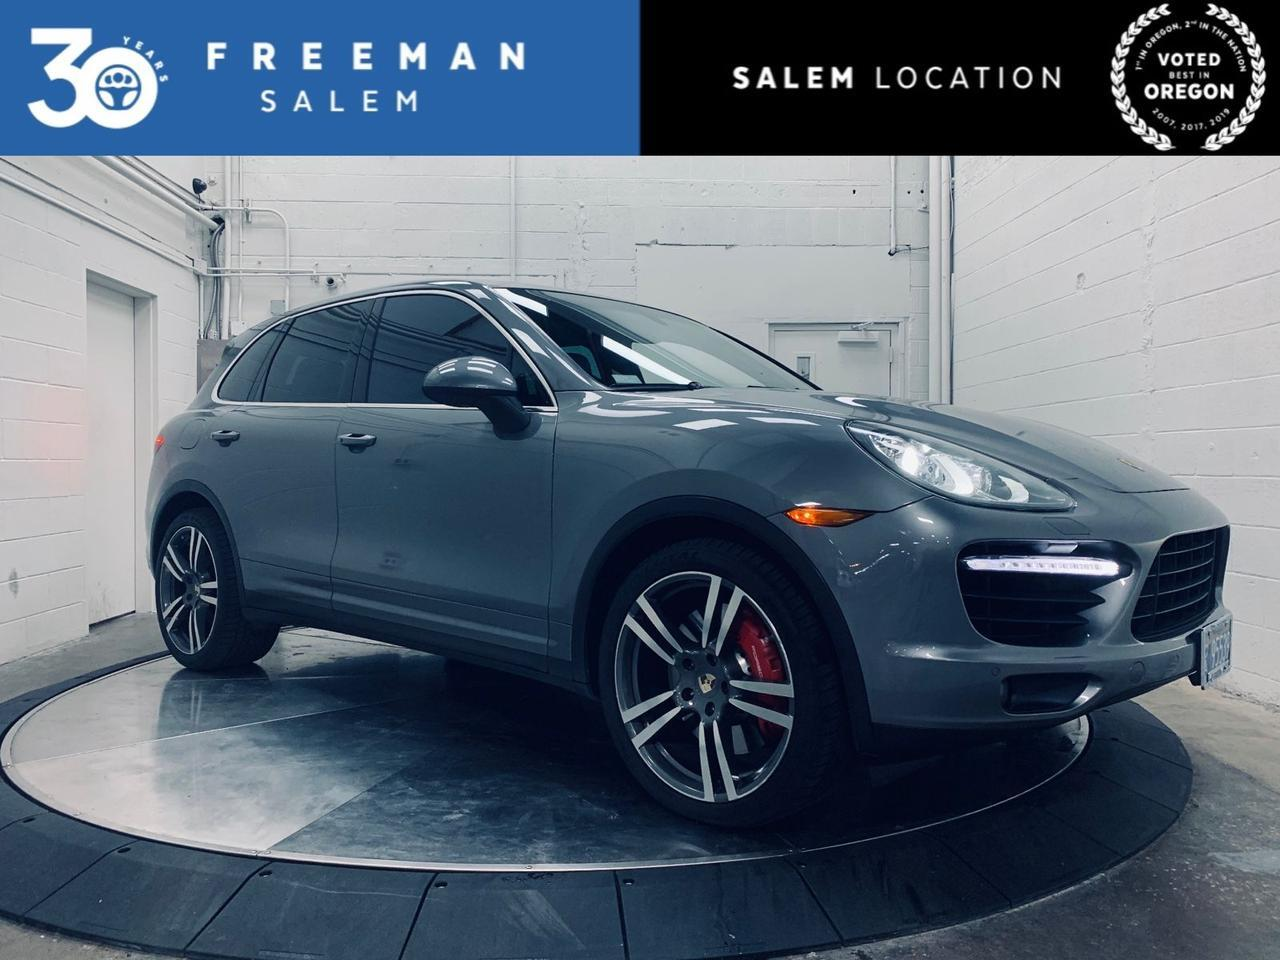 2011 Porsche Cayenne AWD Turbo Burmester Sound Lane Assist Salem OR